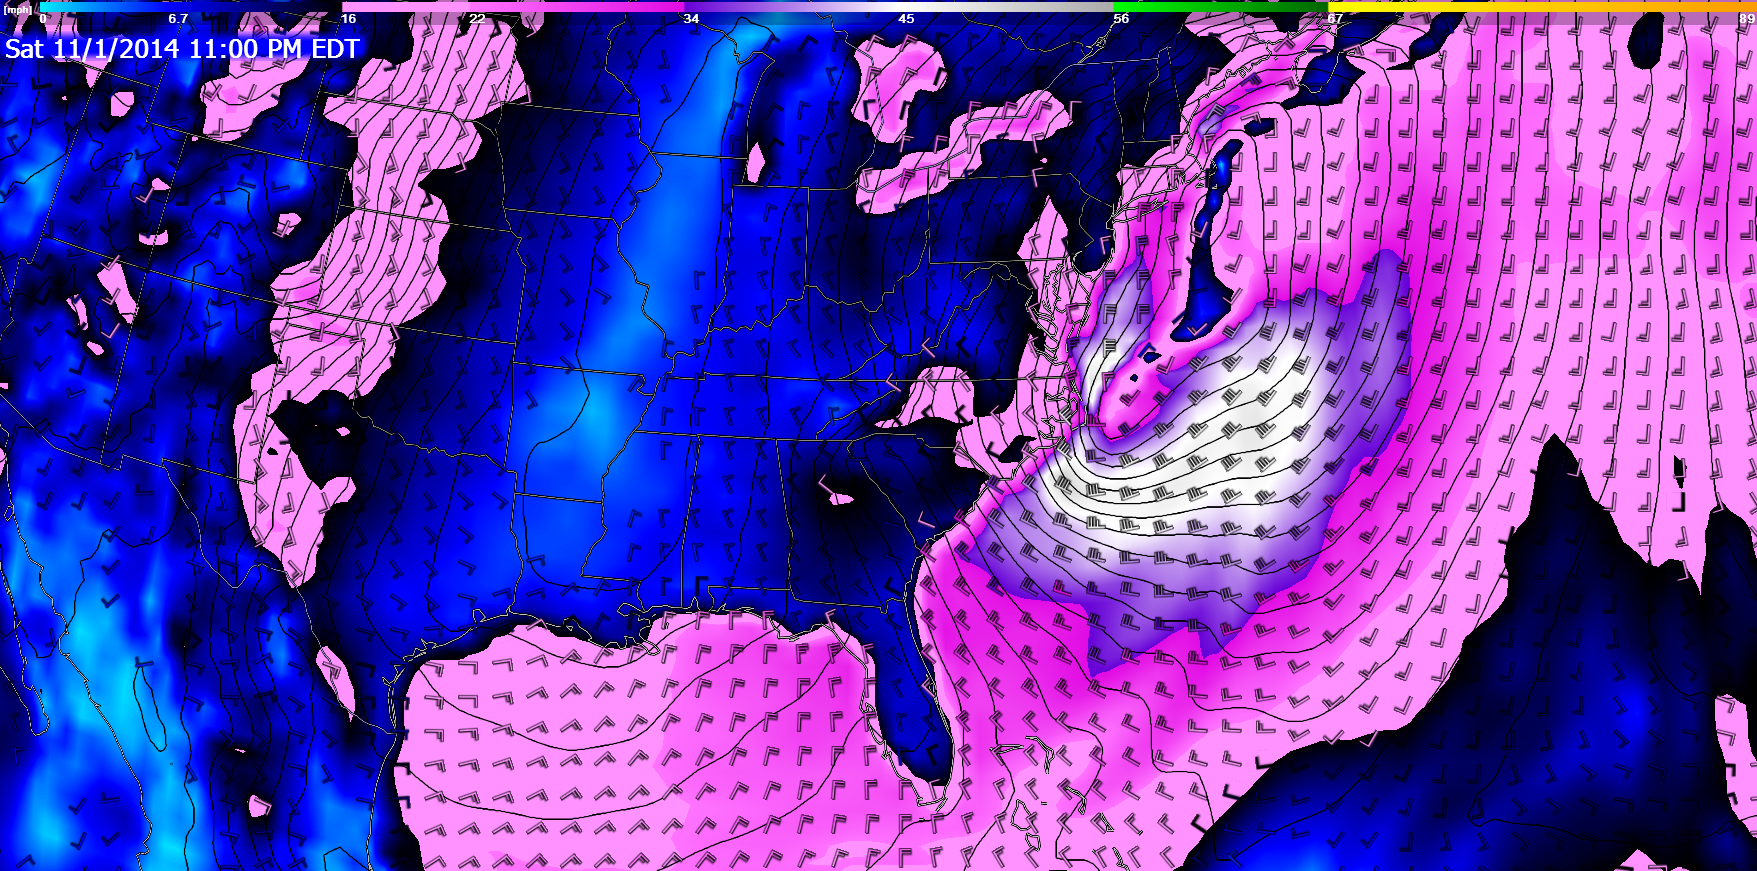 18Z GFS surface winds for Saturday night/Sunday morning.